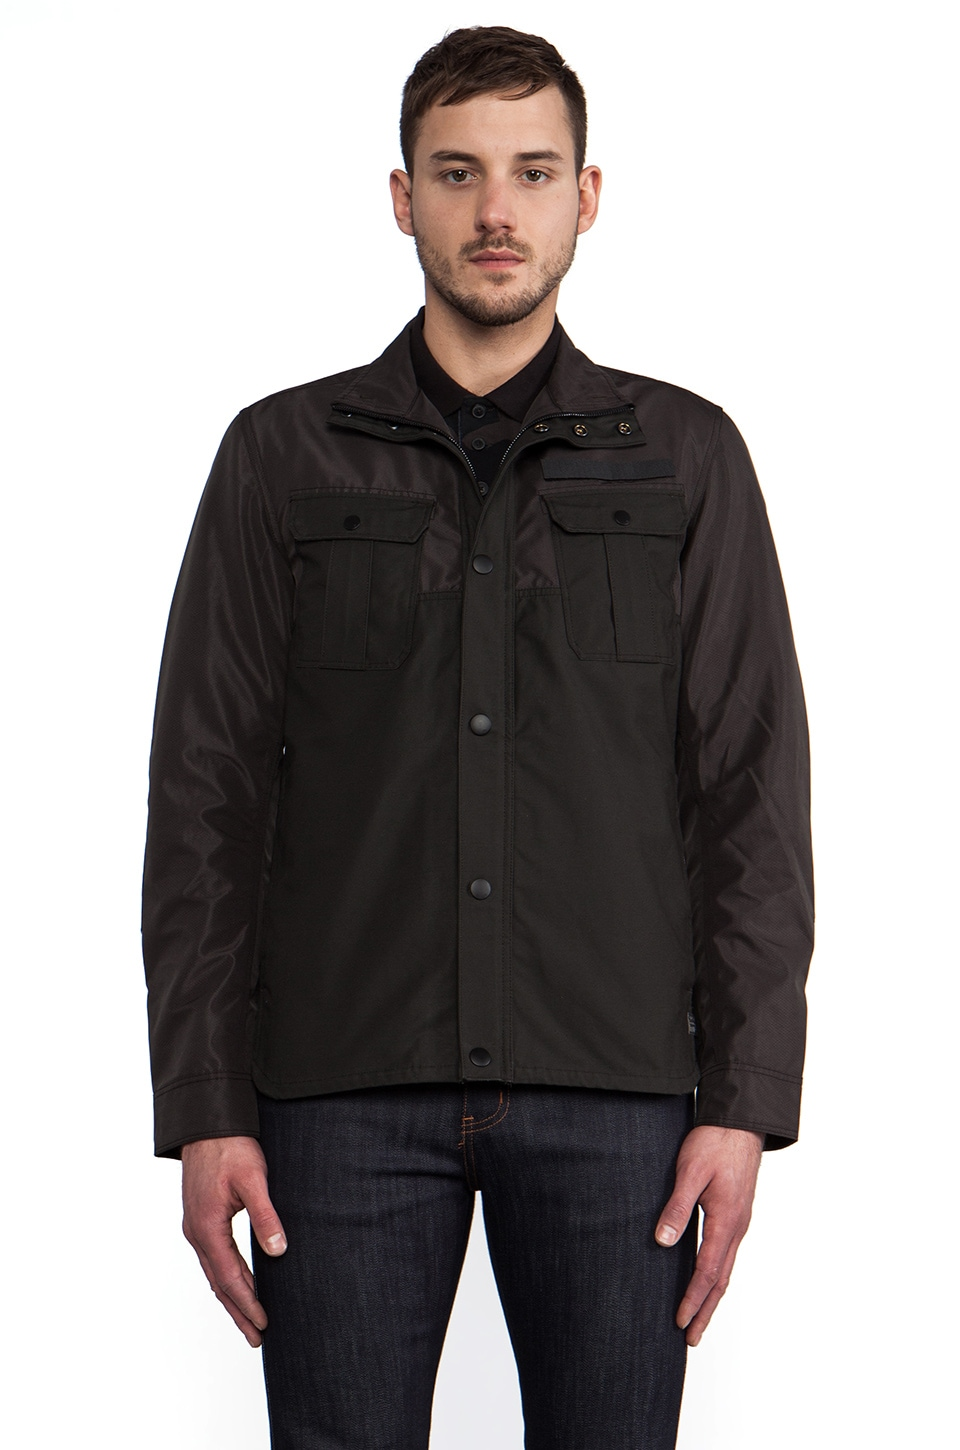 G-Star Filch Bonded Overshirt in Raven